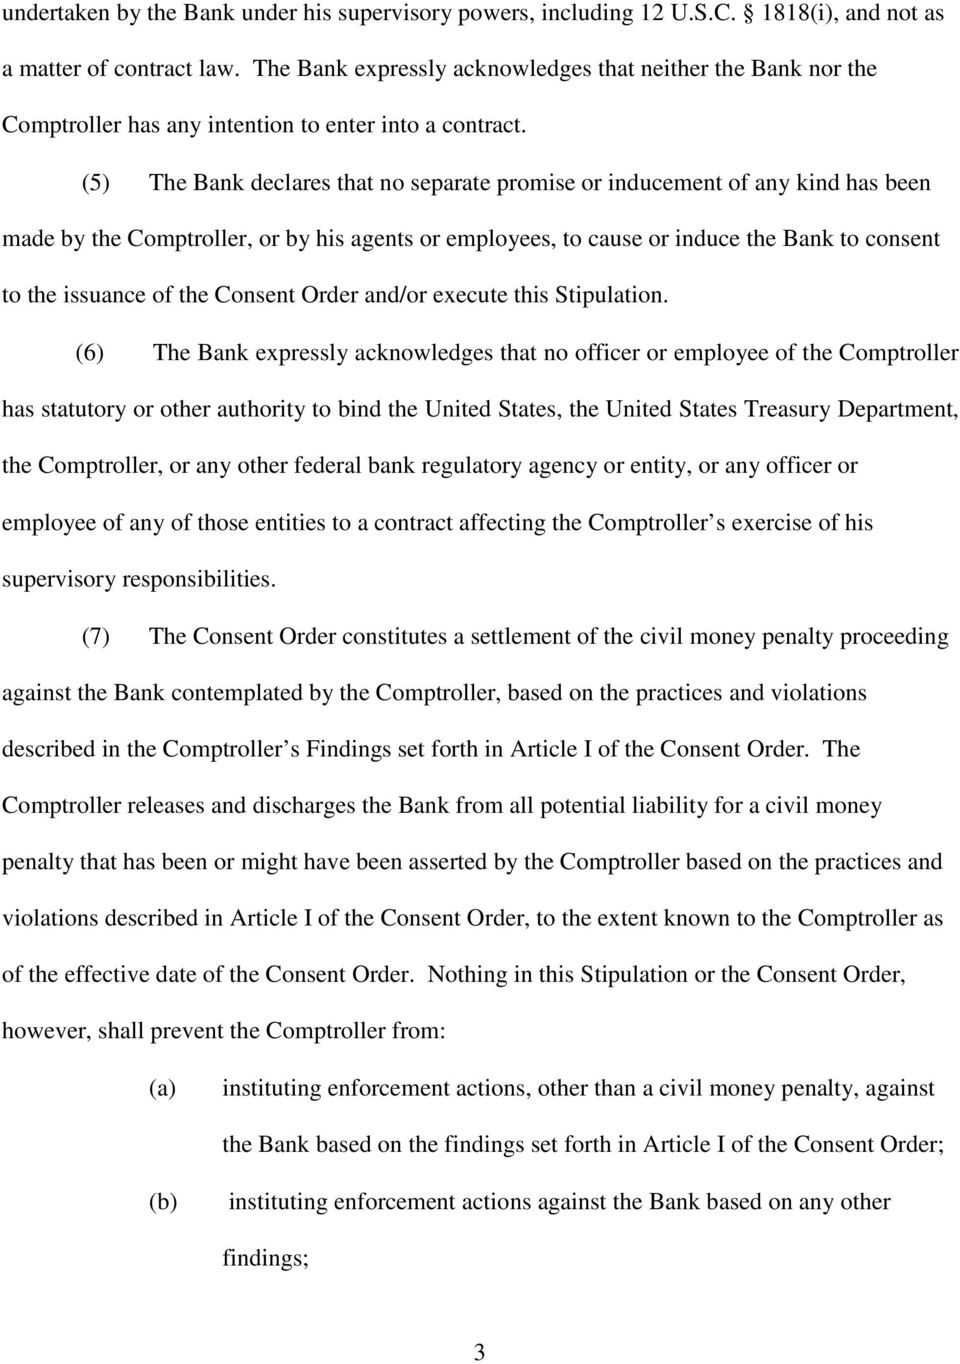 (5 The Bank declares that no separate promise or inducement of any kind has been made by the Comptroller, or by his agents or employees, to cause or induce the Bank to consent to the issuance of the